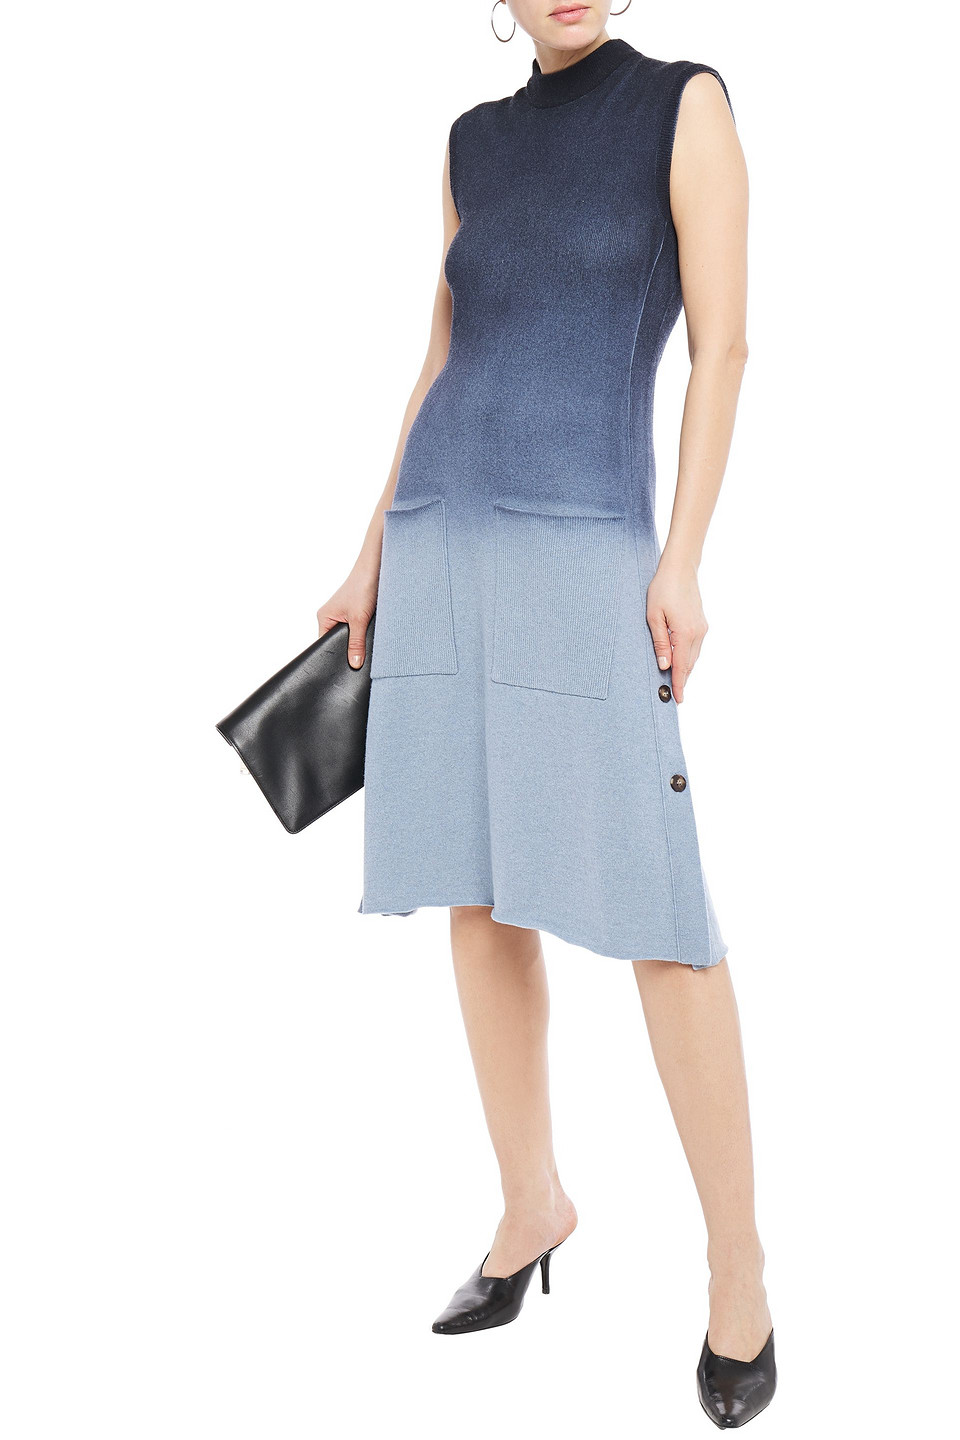 Cédric Charlier | Cedric Charlier Woman Degrade Wool-blend Midi Dress Light Blue | Clouty